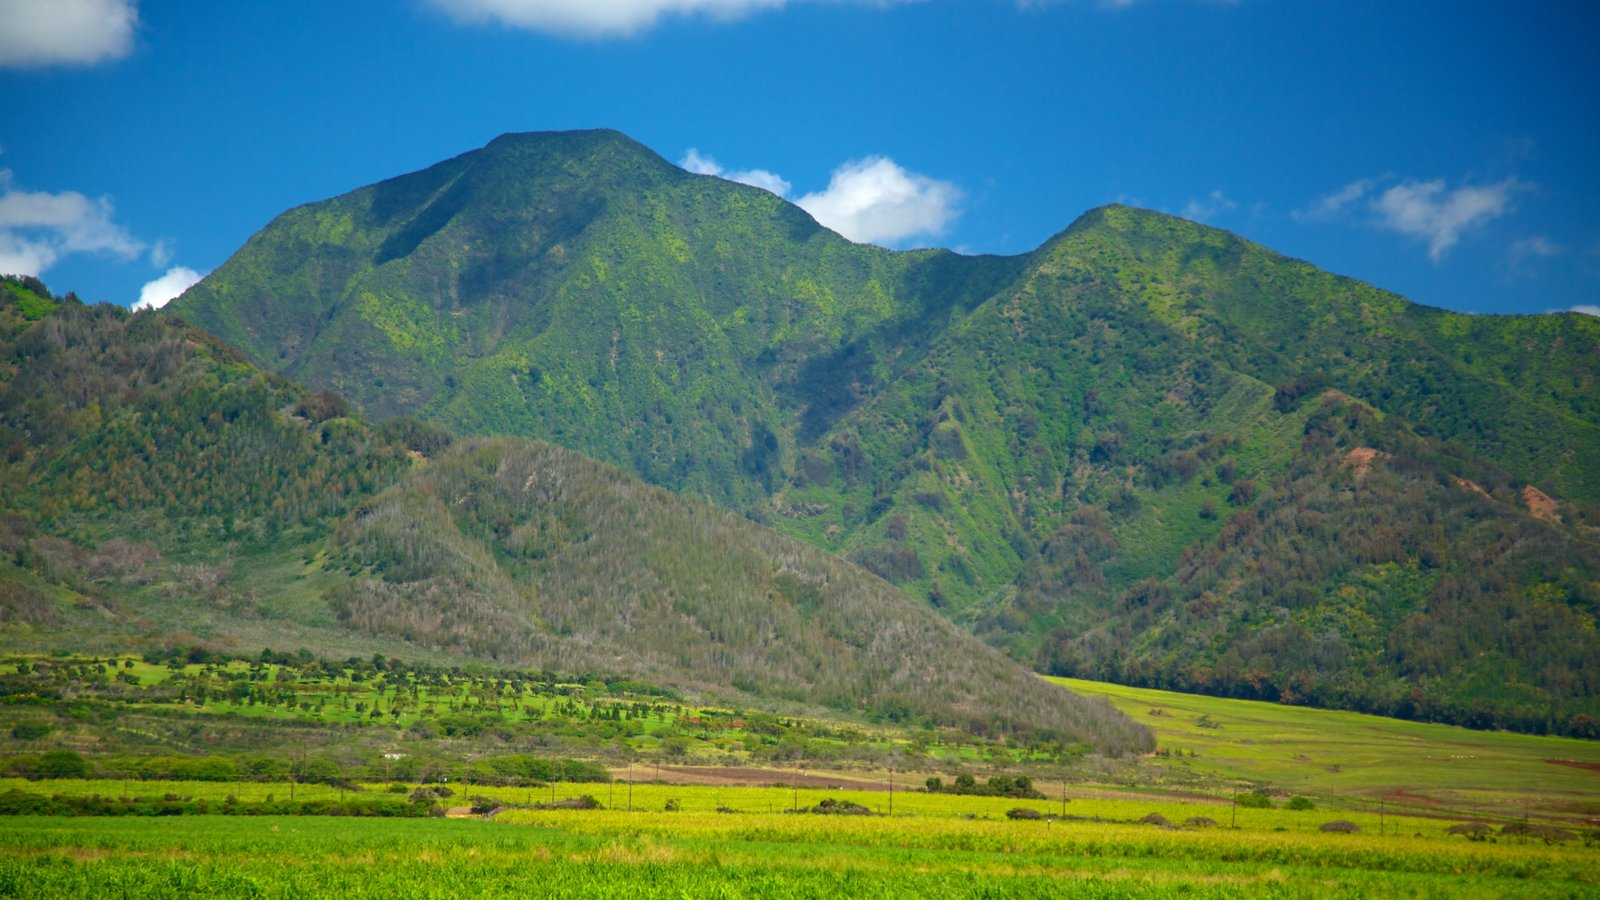 Mountain Pictures: View Images of Hawaii